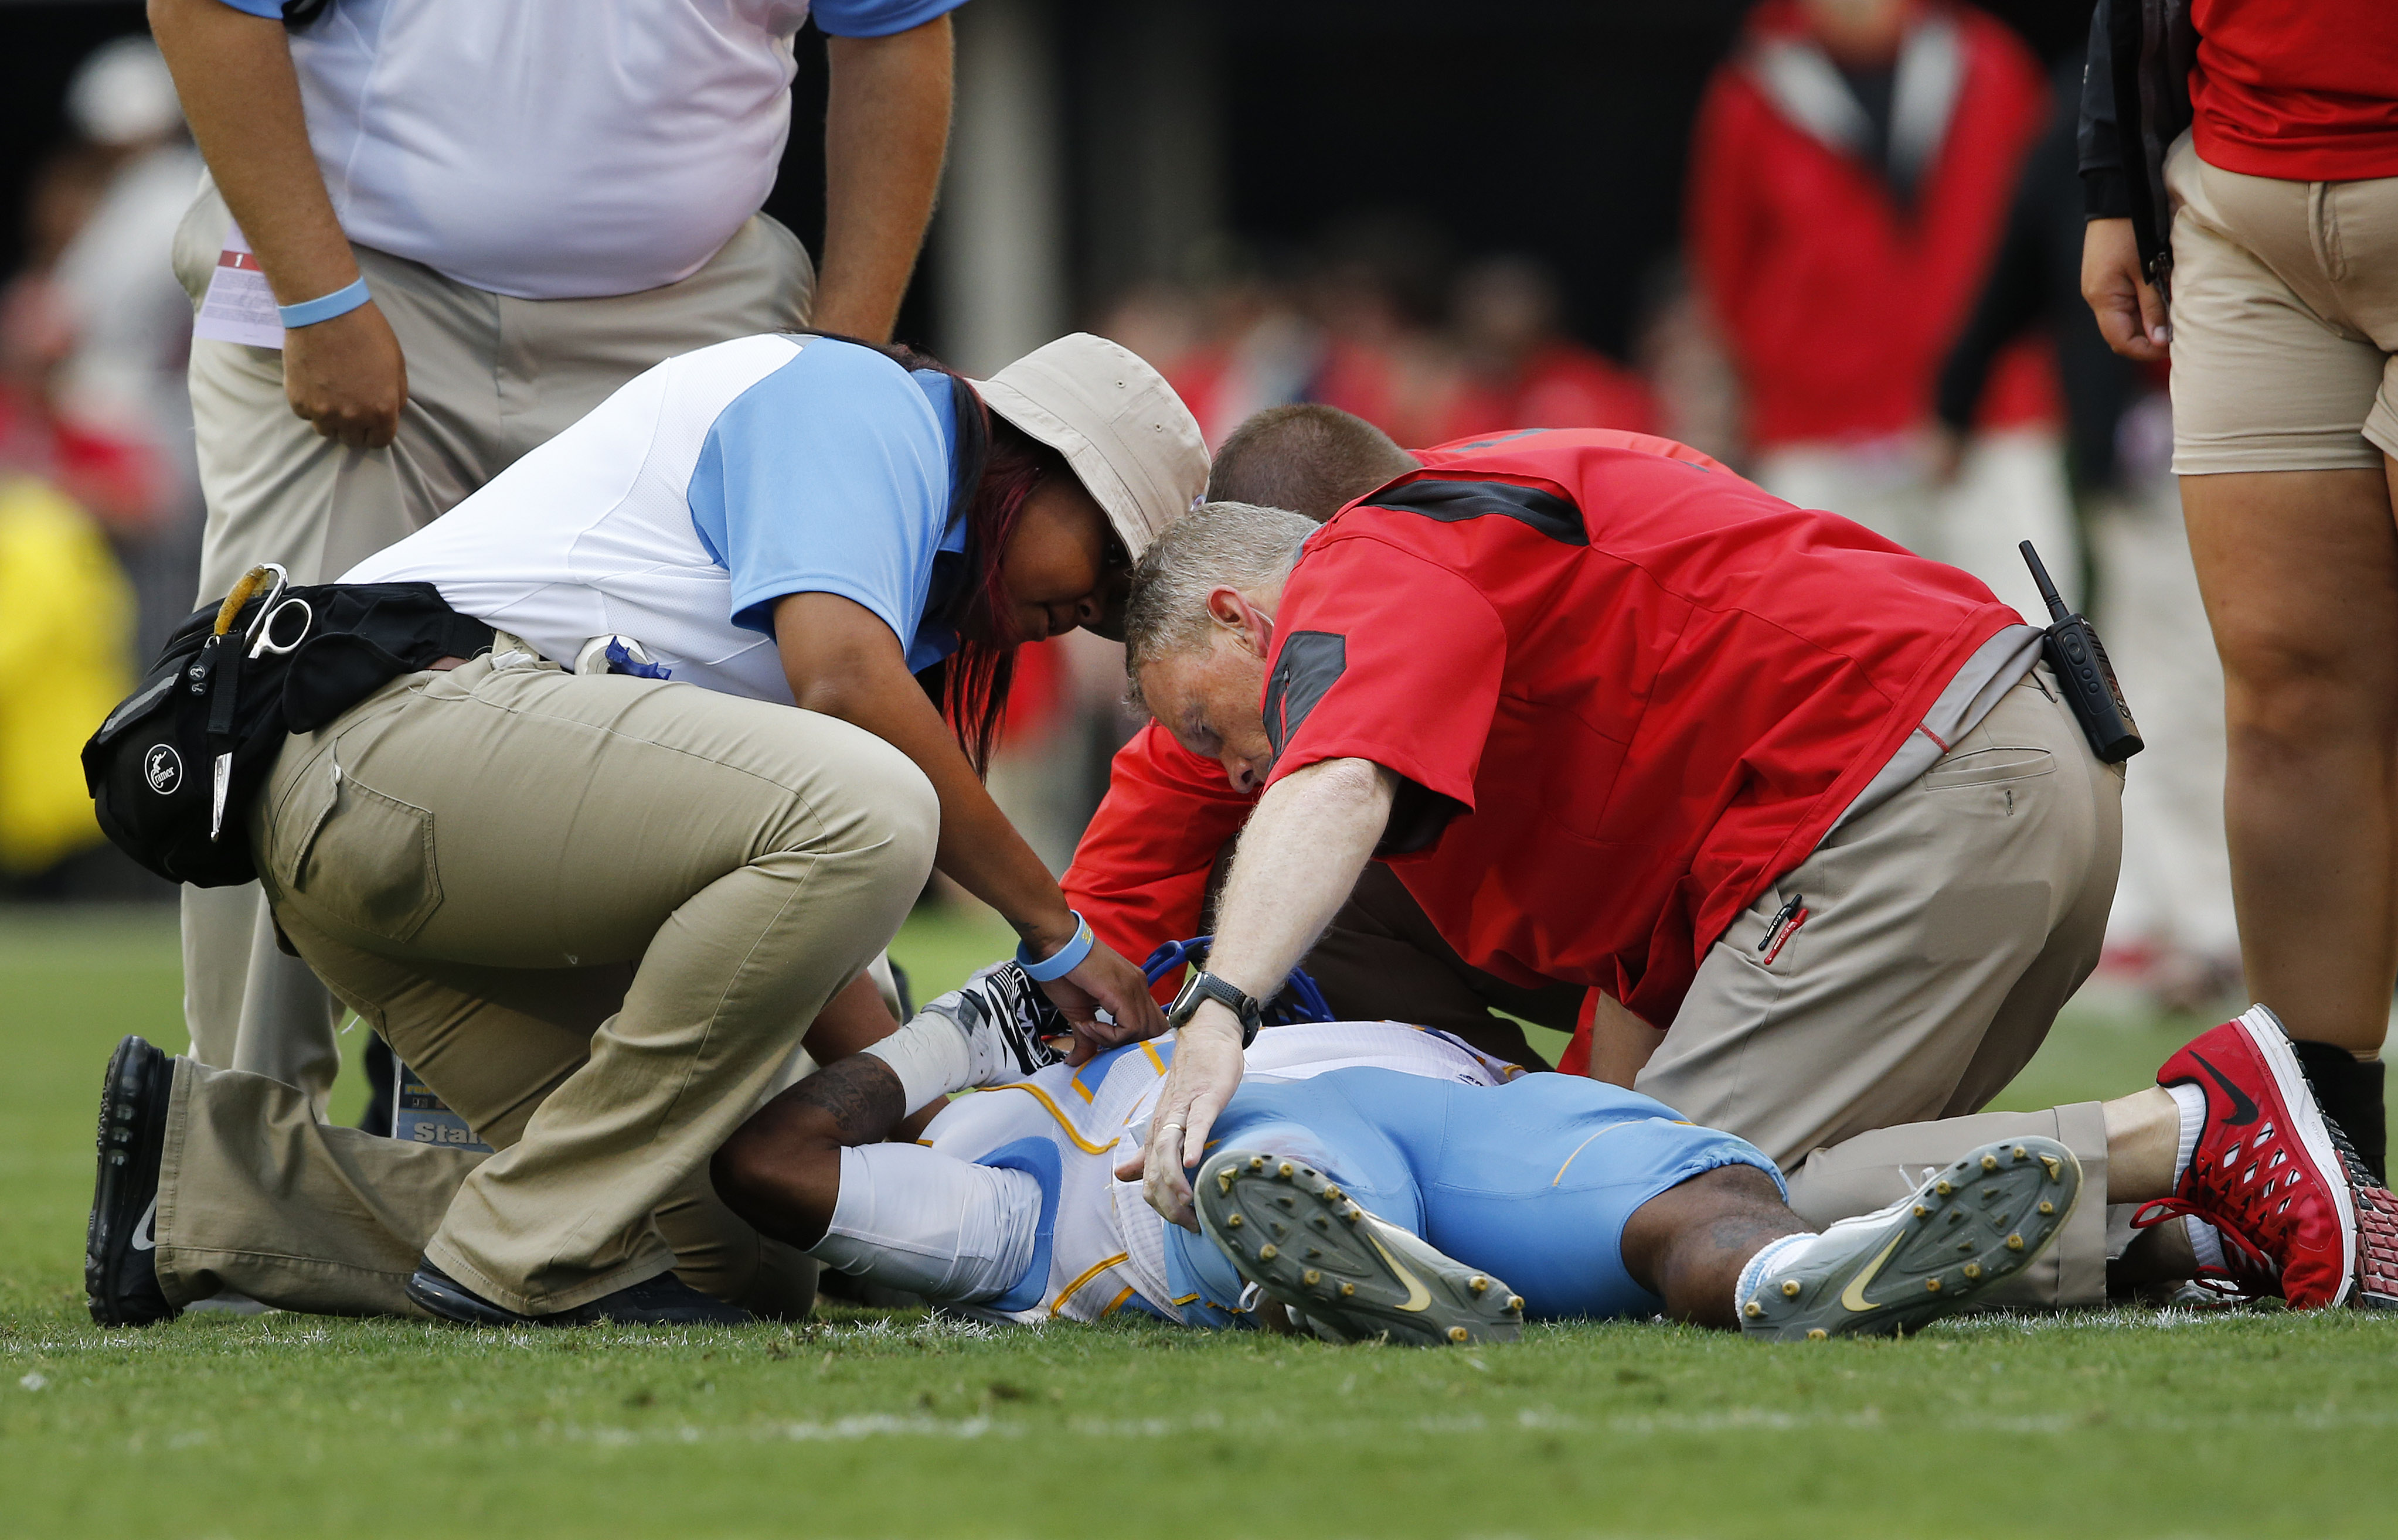 Members of the Southern and Georgia training staff tend to Southern wide receiver Devon Gales (33) after he was injured in the second half of an NCAA college football game against Georgia Saturday, Sept. 26, 2015, in Athens , Ga. Gales was placed on backboard and taken off the field on a cart.